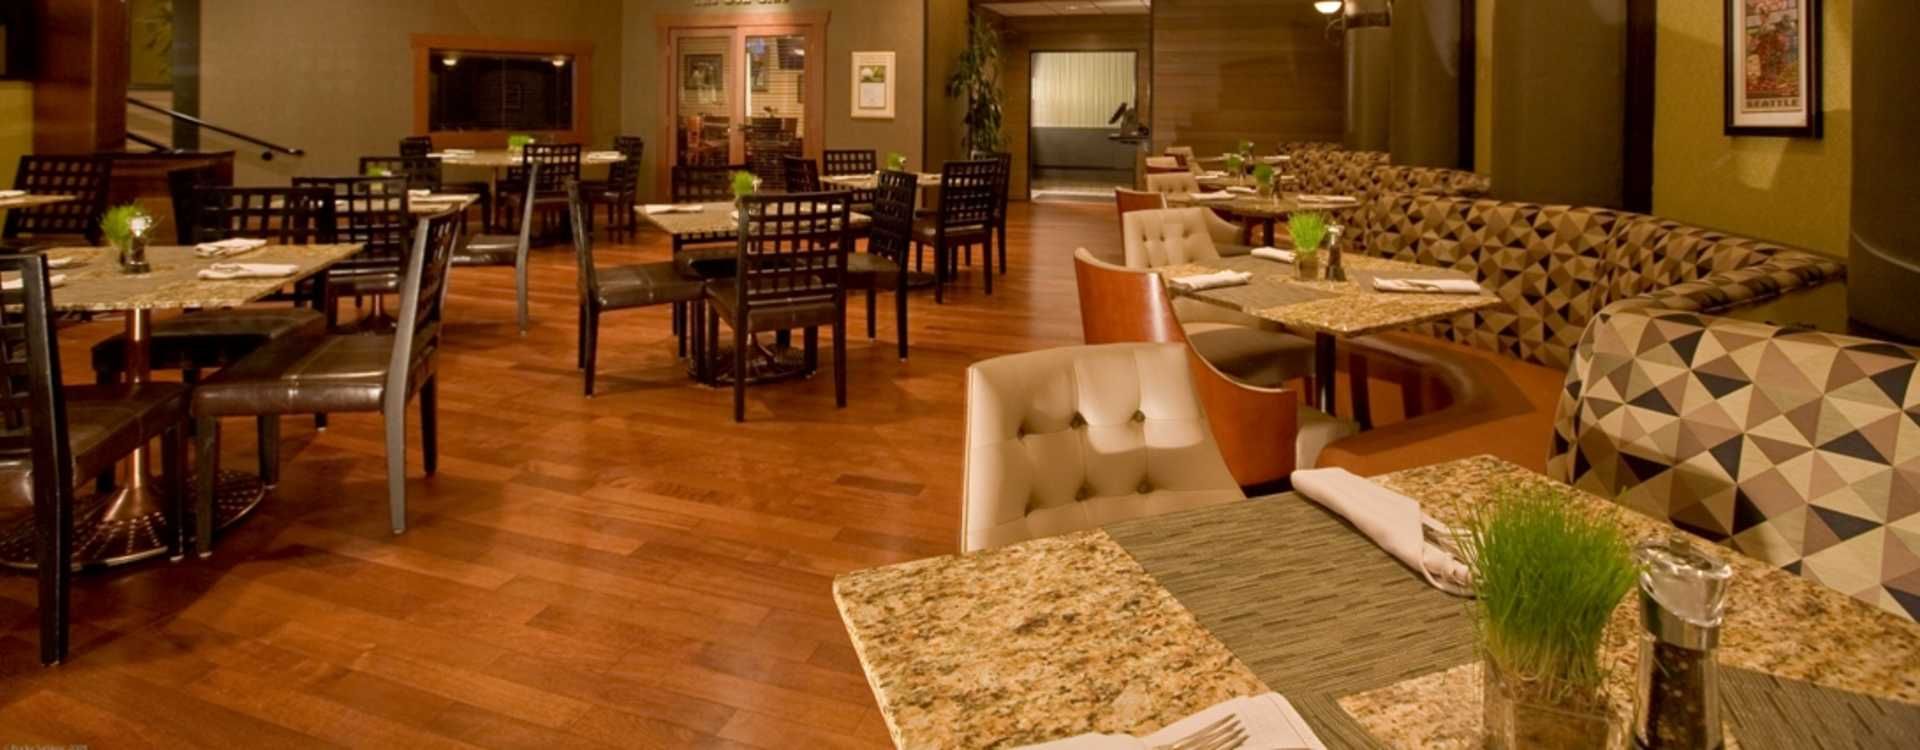 meeting-facility-DoubleTree_by_Hilton_Seattle_Airport_Meeting_Facility-4.jpg